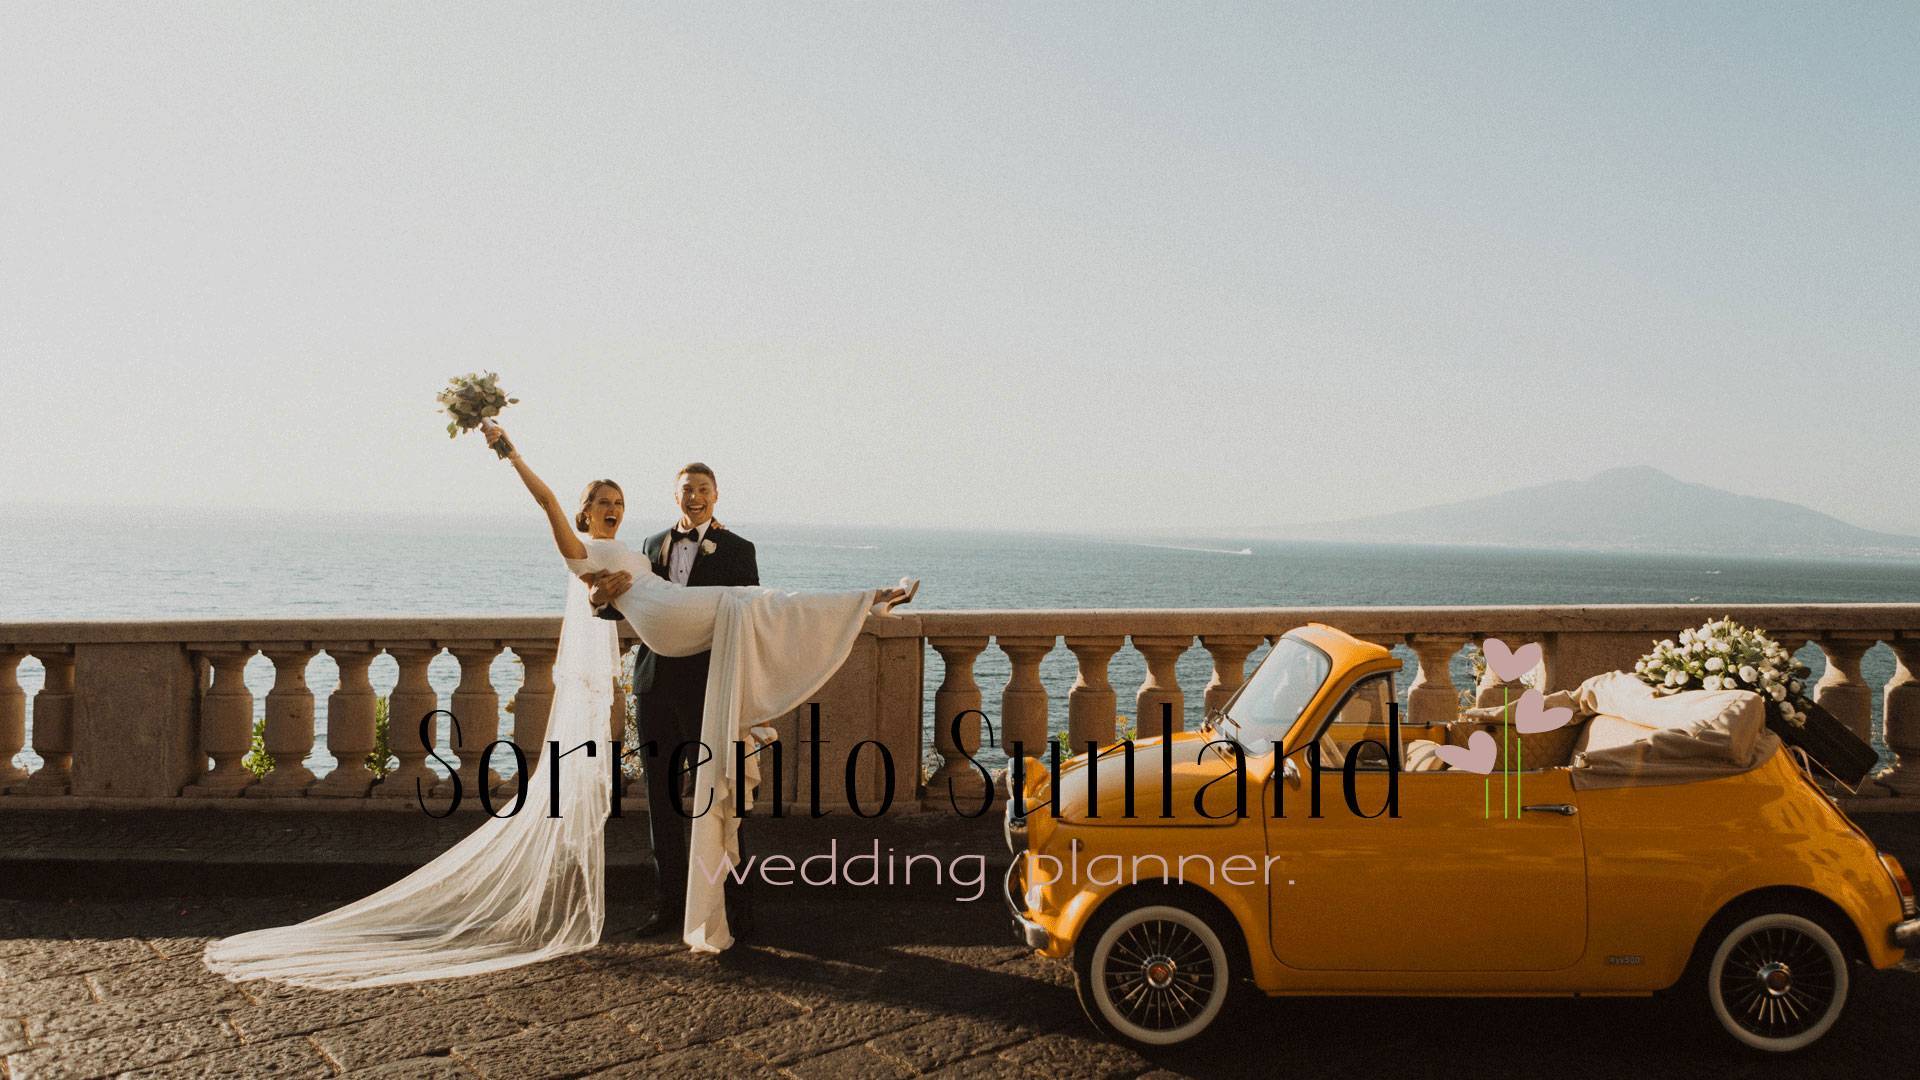 """Sorrento Town. Bride is in grooms arms facing the camera. The bride has her bouquet in hand with her armed raised celebrating their recent commitment. Her vail flows to the ground and so does the train of her white wedding dress. They stand next to a yellow vintage convertible Fiat 500 that has a flowers composition laying on it. In the background is the ocean and the lightly foggy sky, which shows an outline of a mountain. Text goes across the bottom of the image reading """"Sorrento Sunland wedding planner."""""""